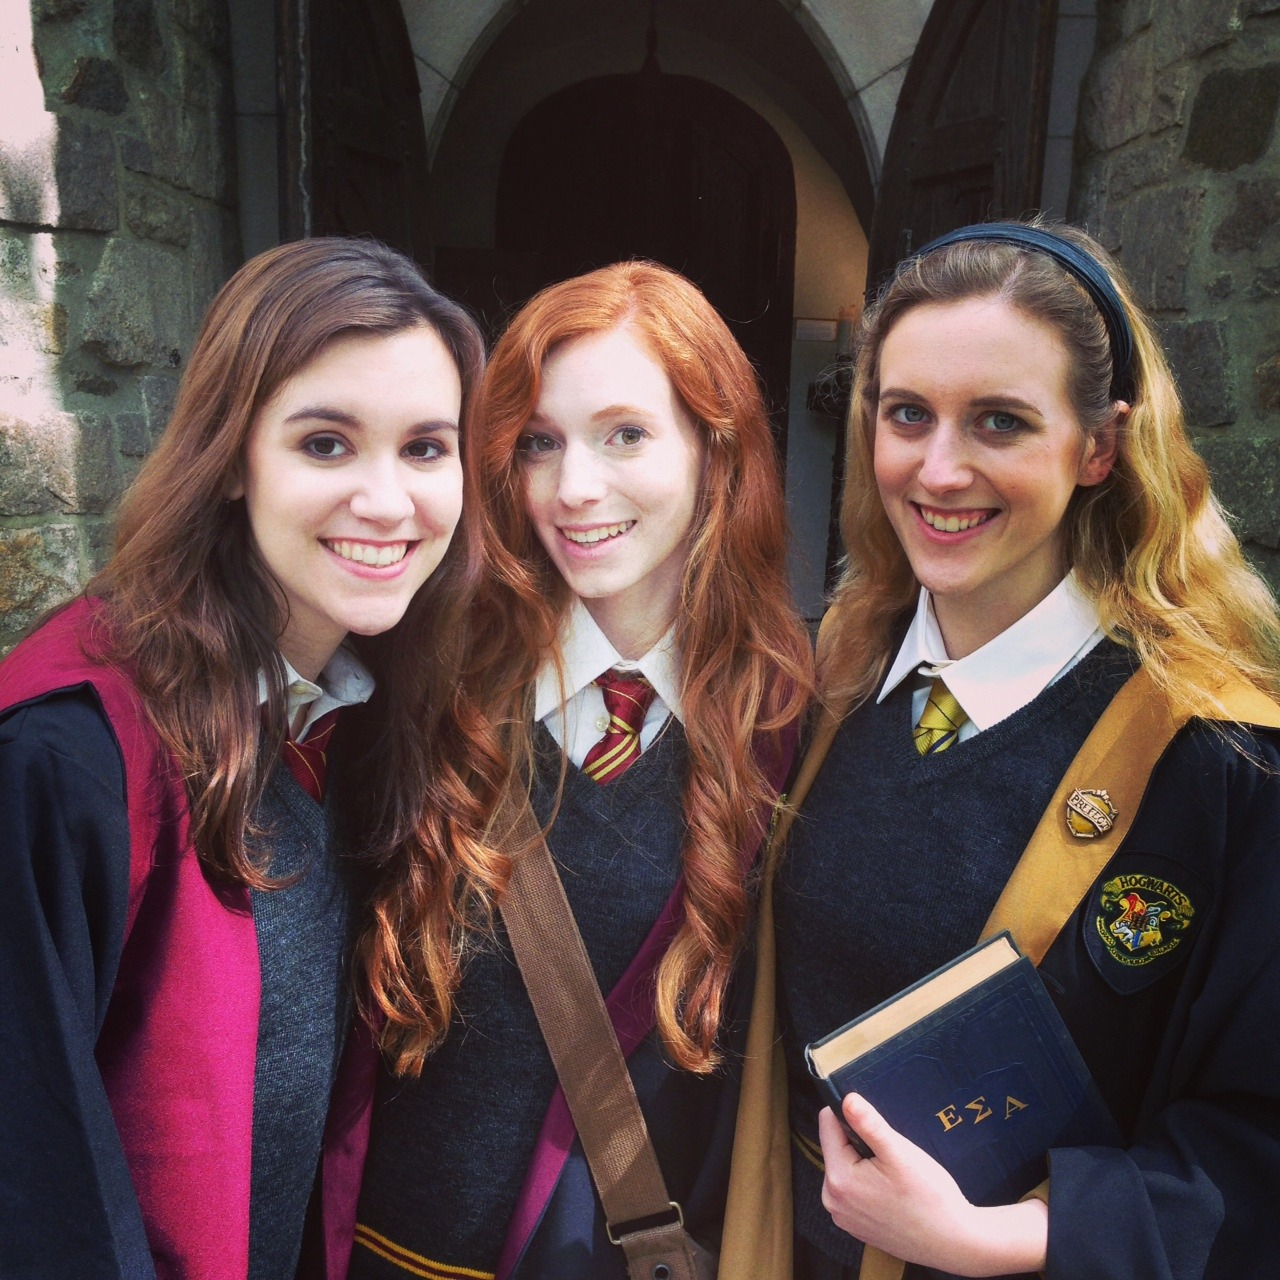 The Lovely Ladies of Hogwarts!